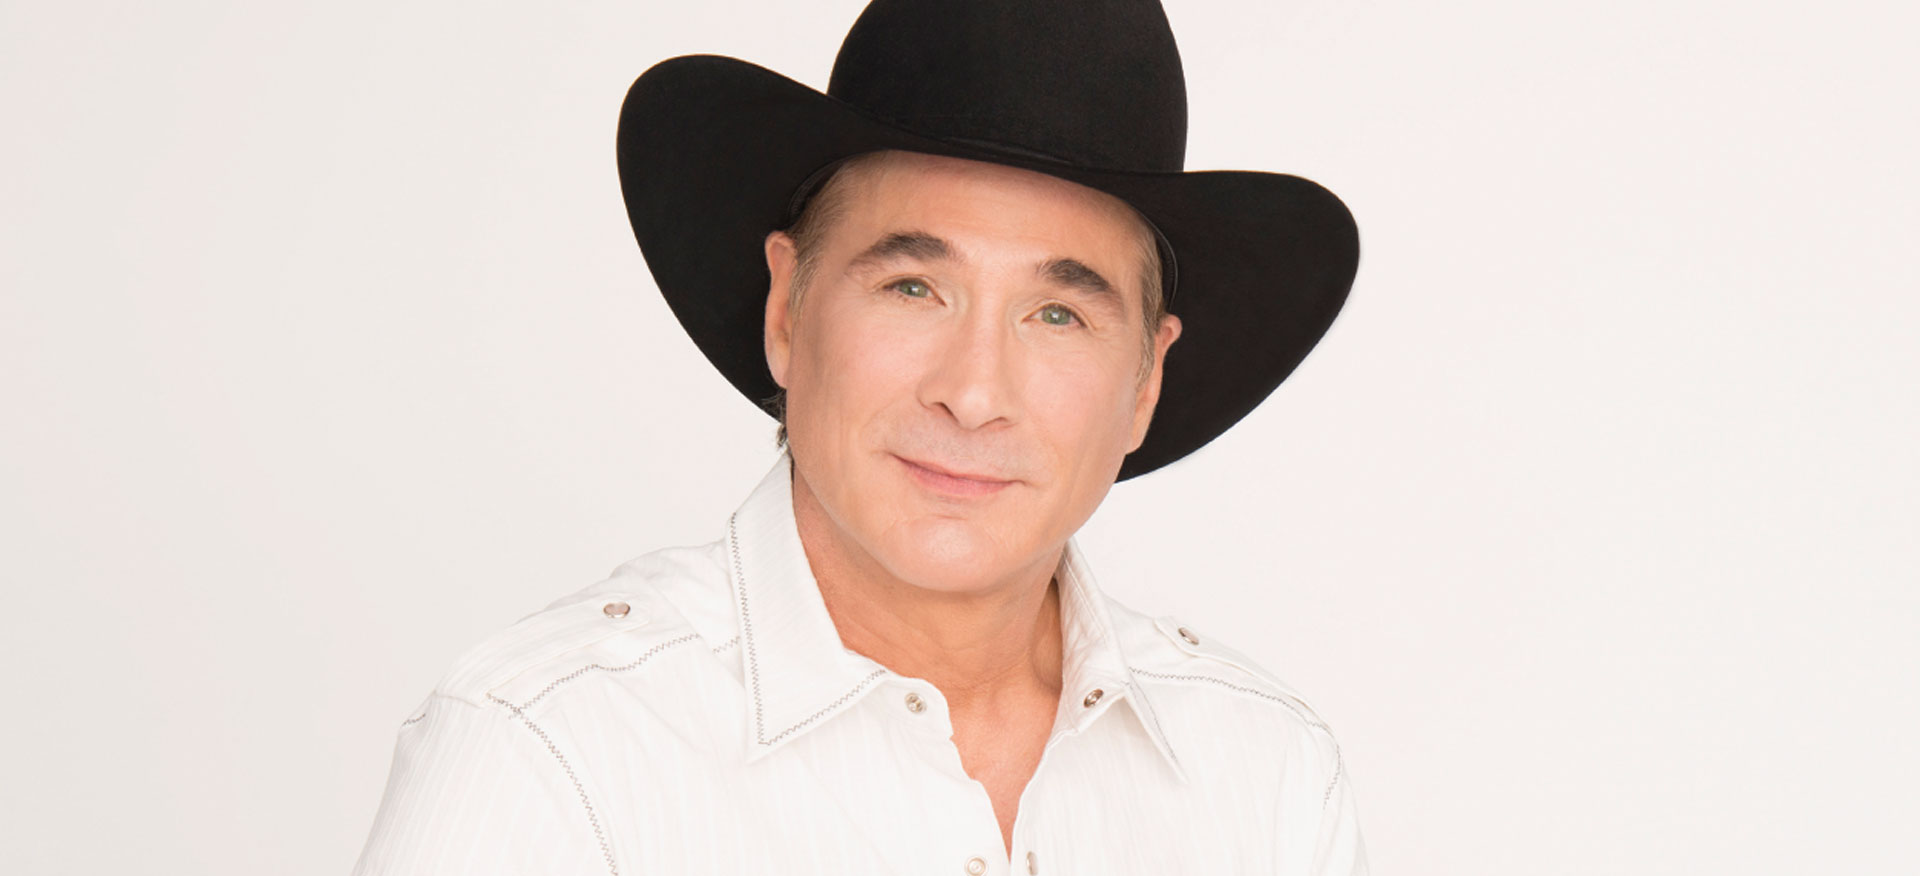 Clint Black To Perform At Dairy Expo